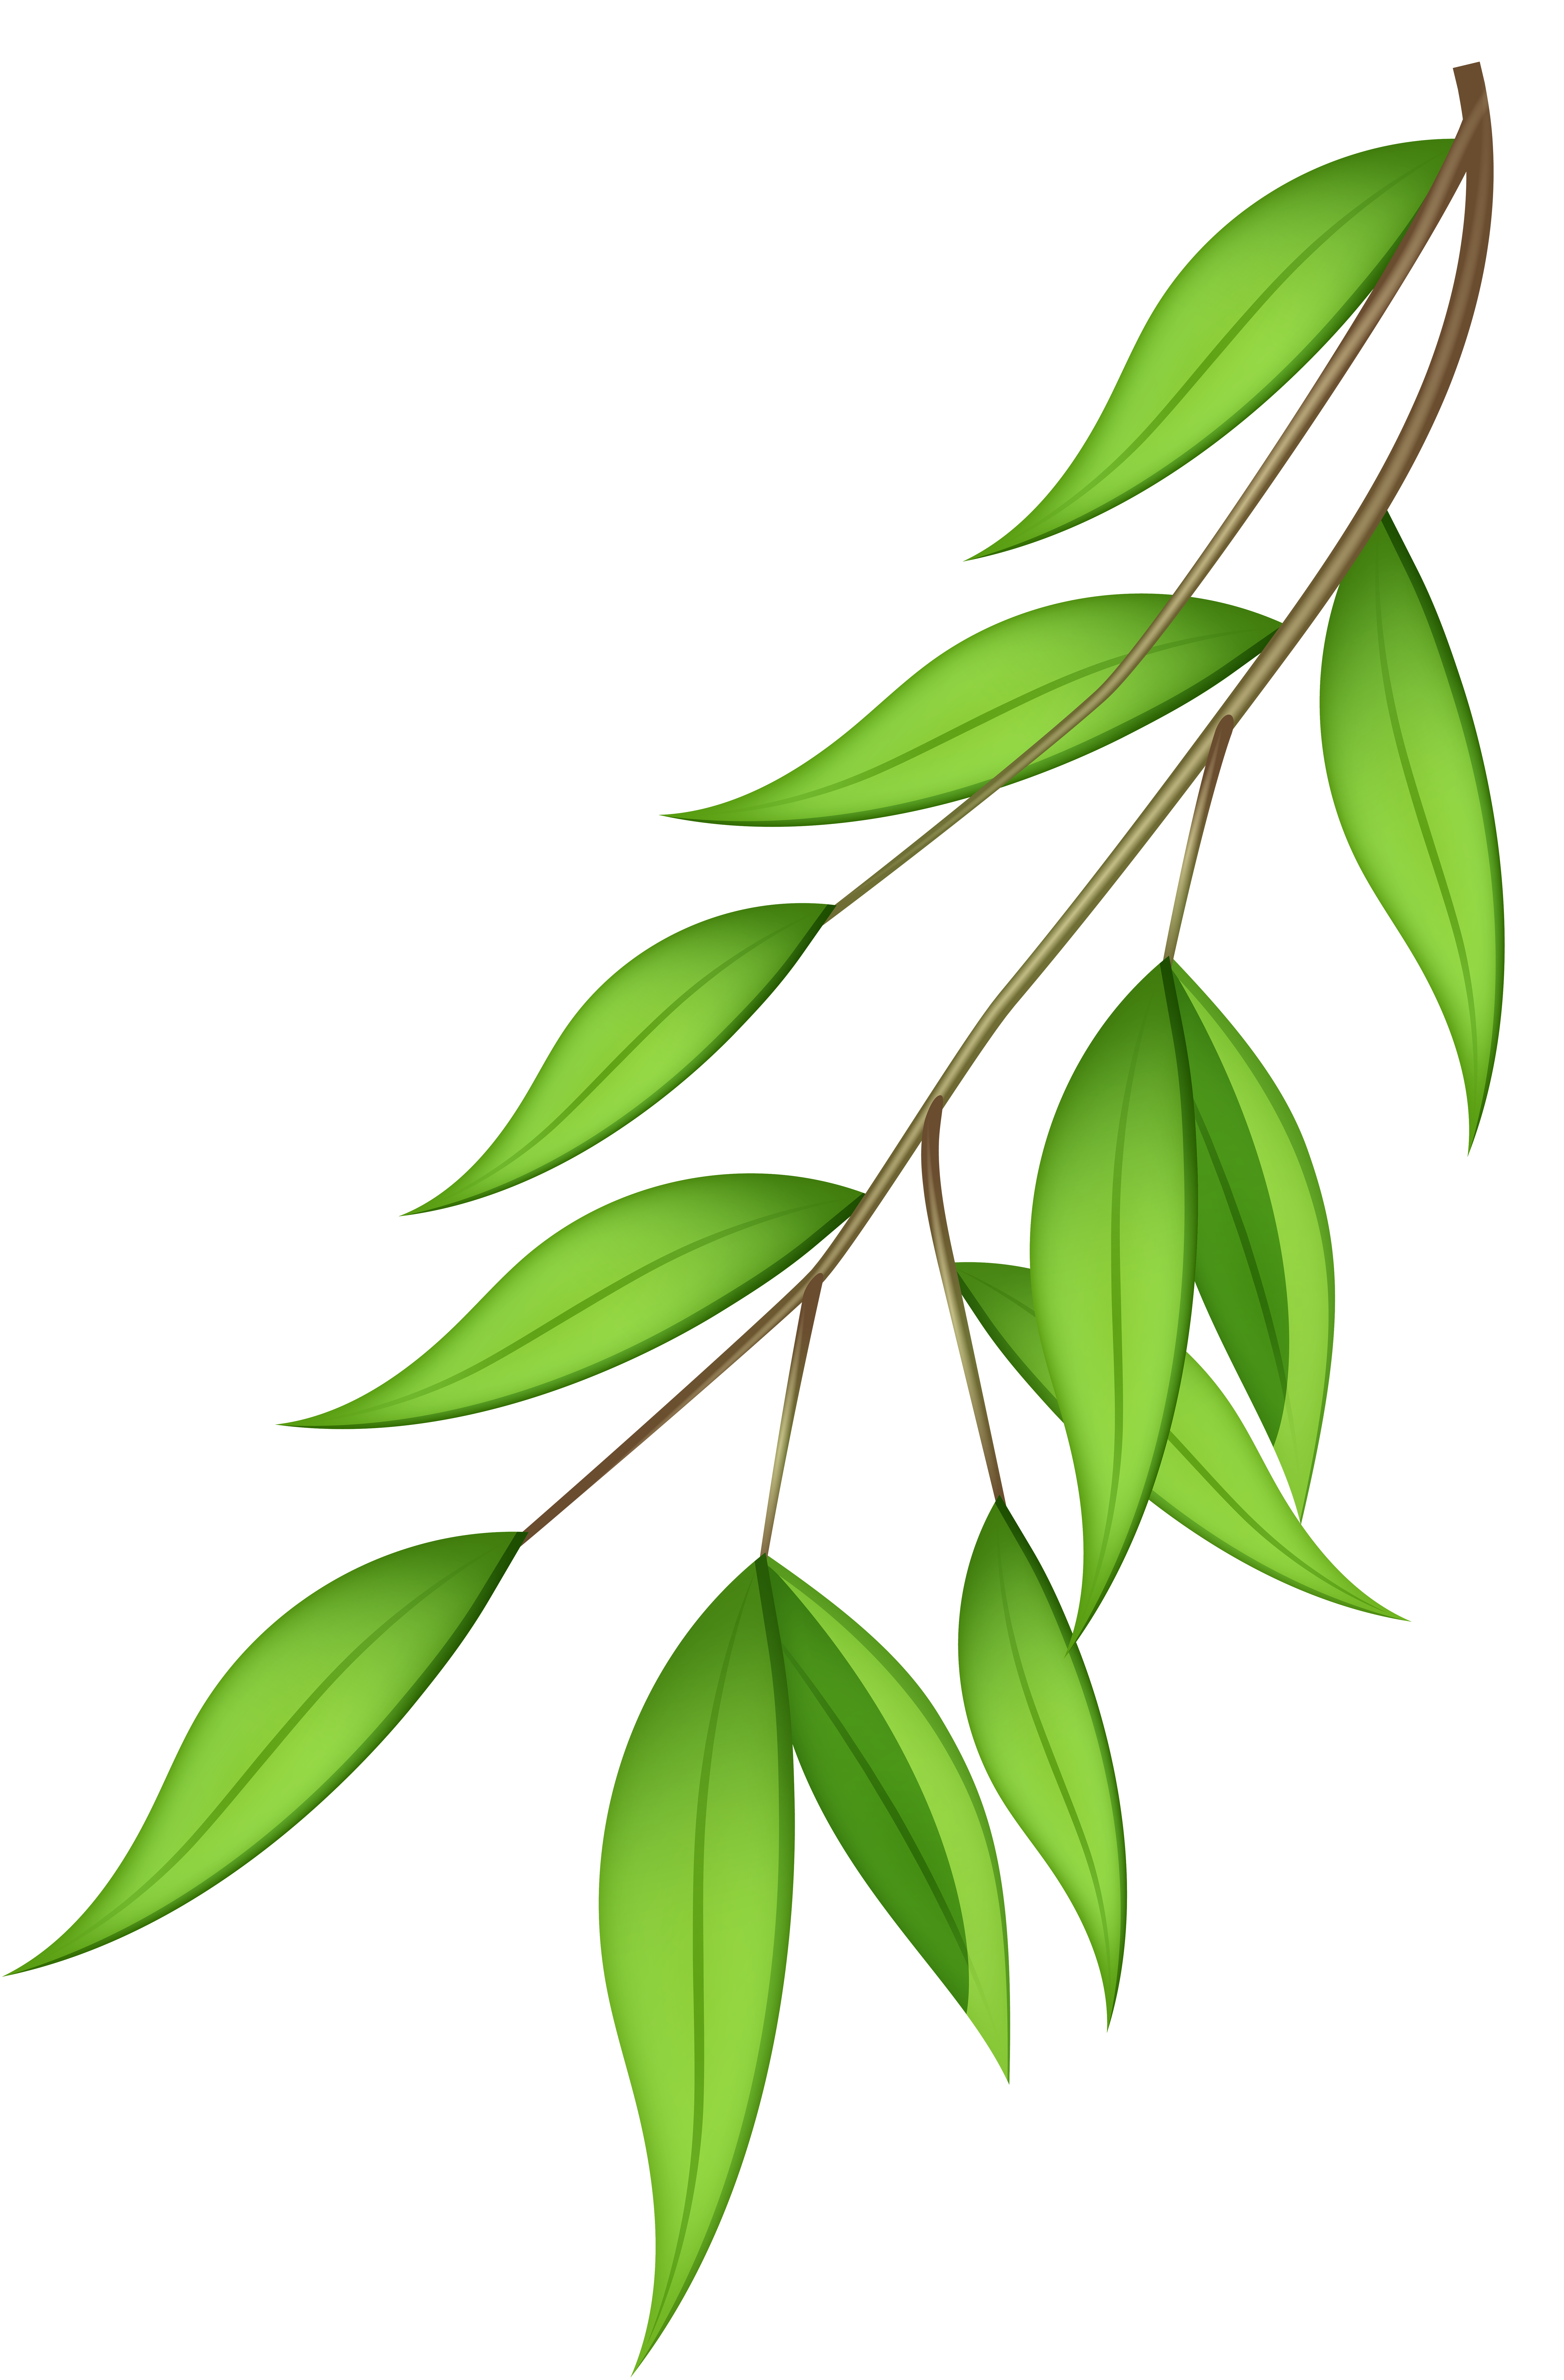 jpg library stock Png transparent clip art. Branch clipart green